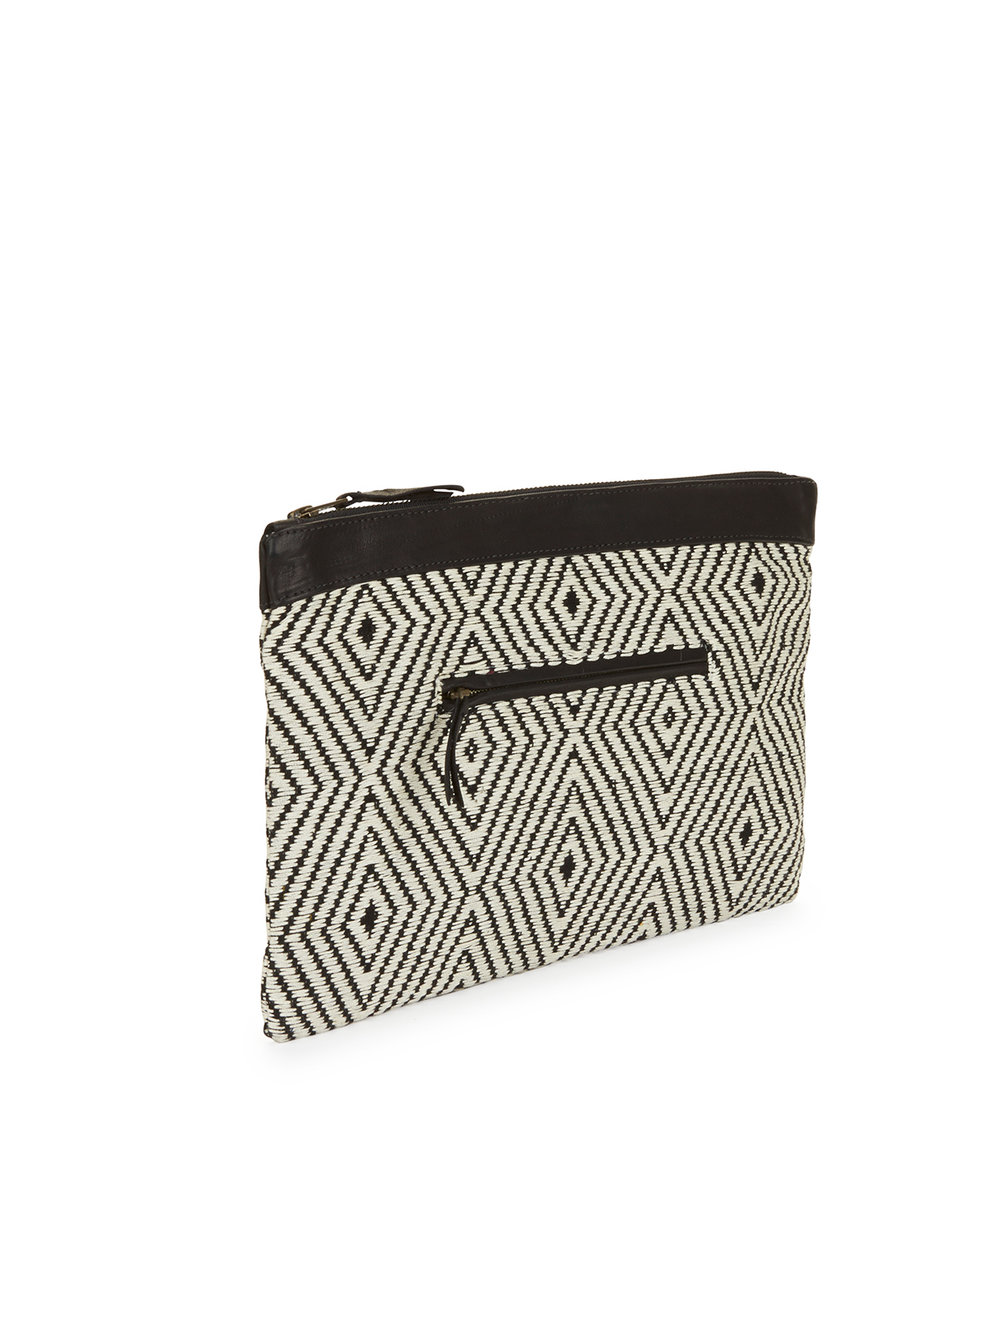 Estella_Clutch_blkwht-pattern_11490.jpg